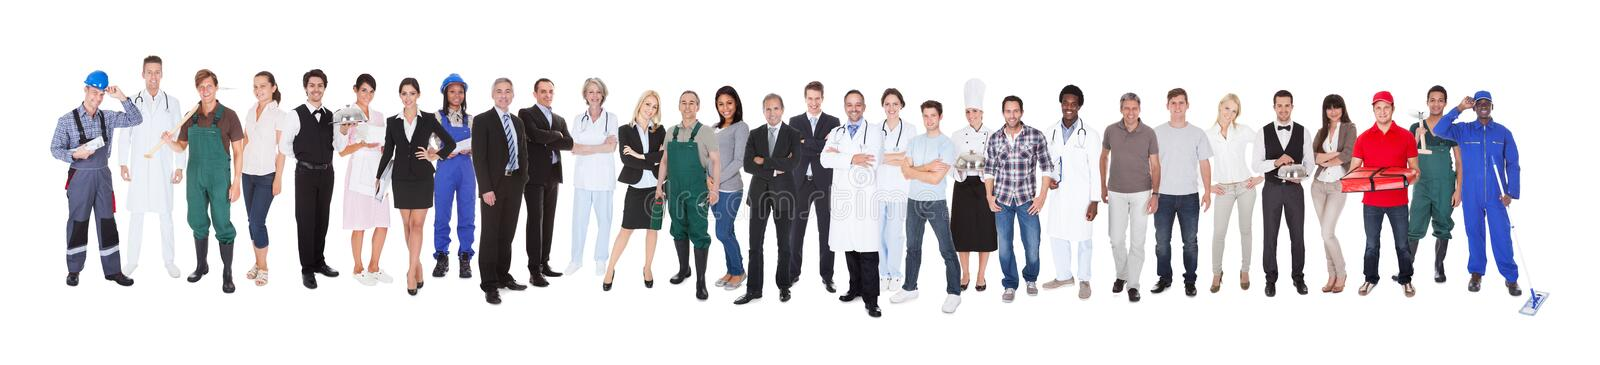 Full length of people with different occupations stock photo